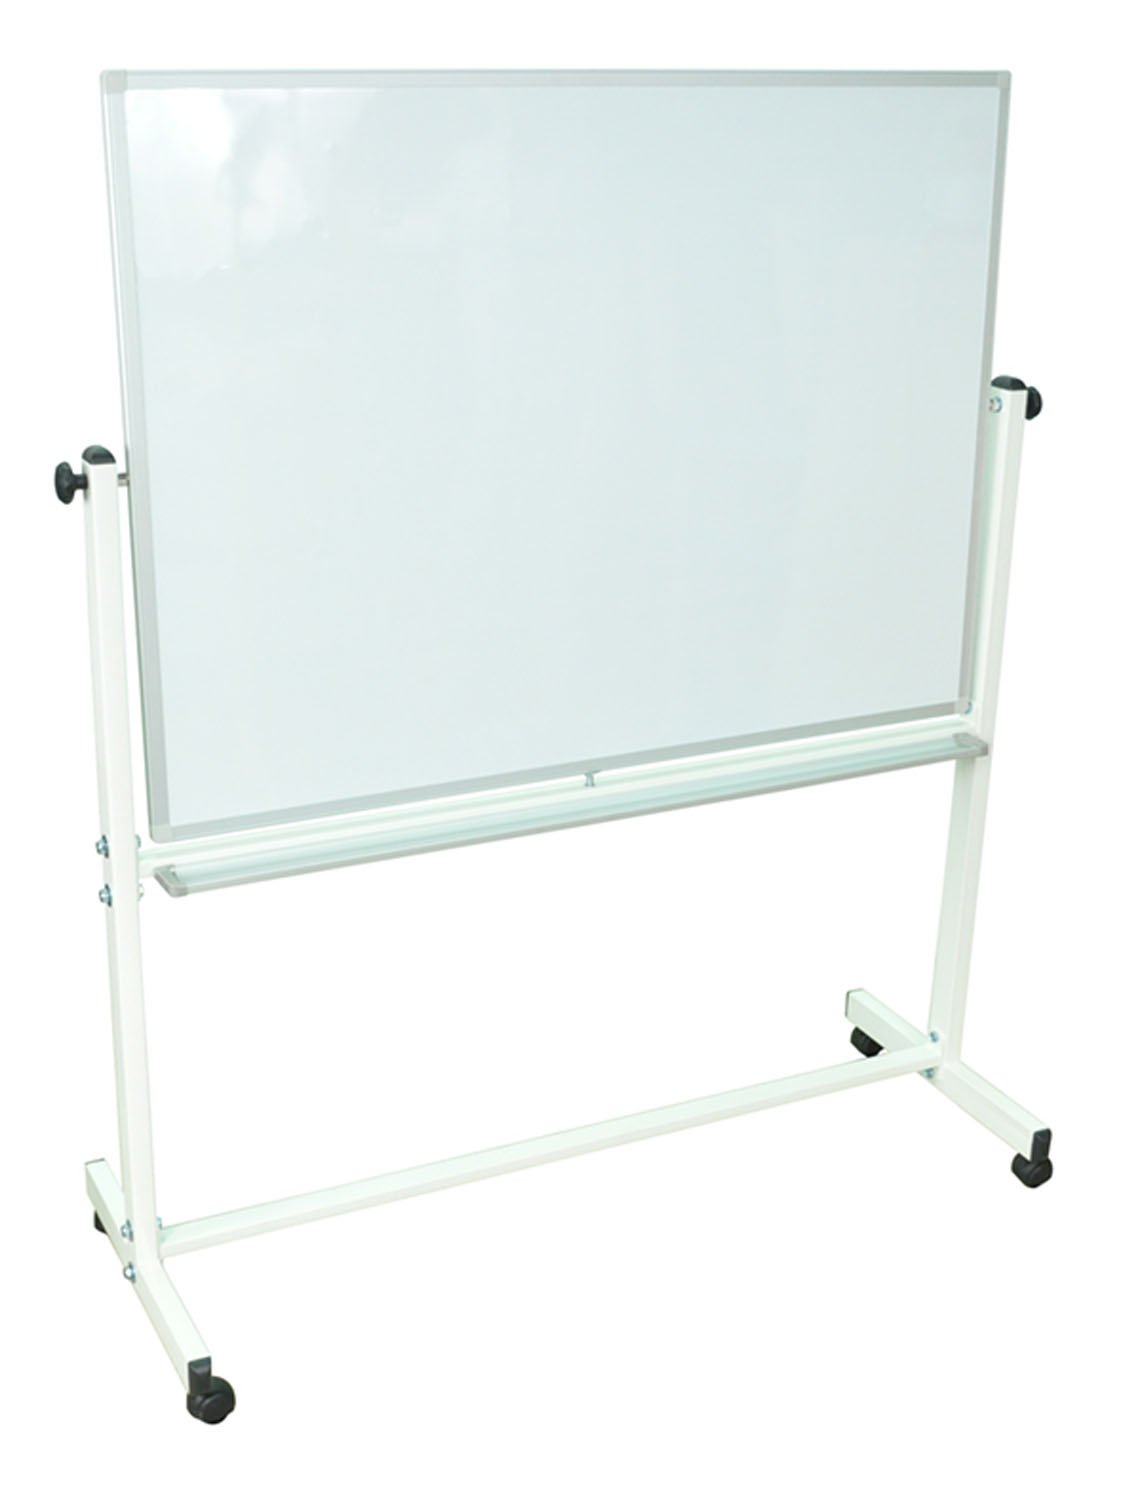 Luxor L340 - 48'' W x 36'' H Double Sided Magnetic White Board by Luxor